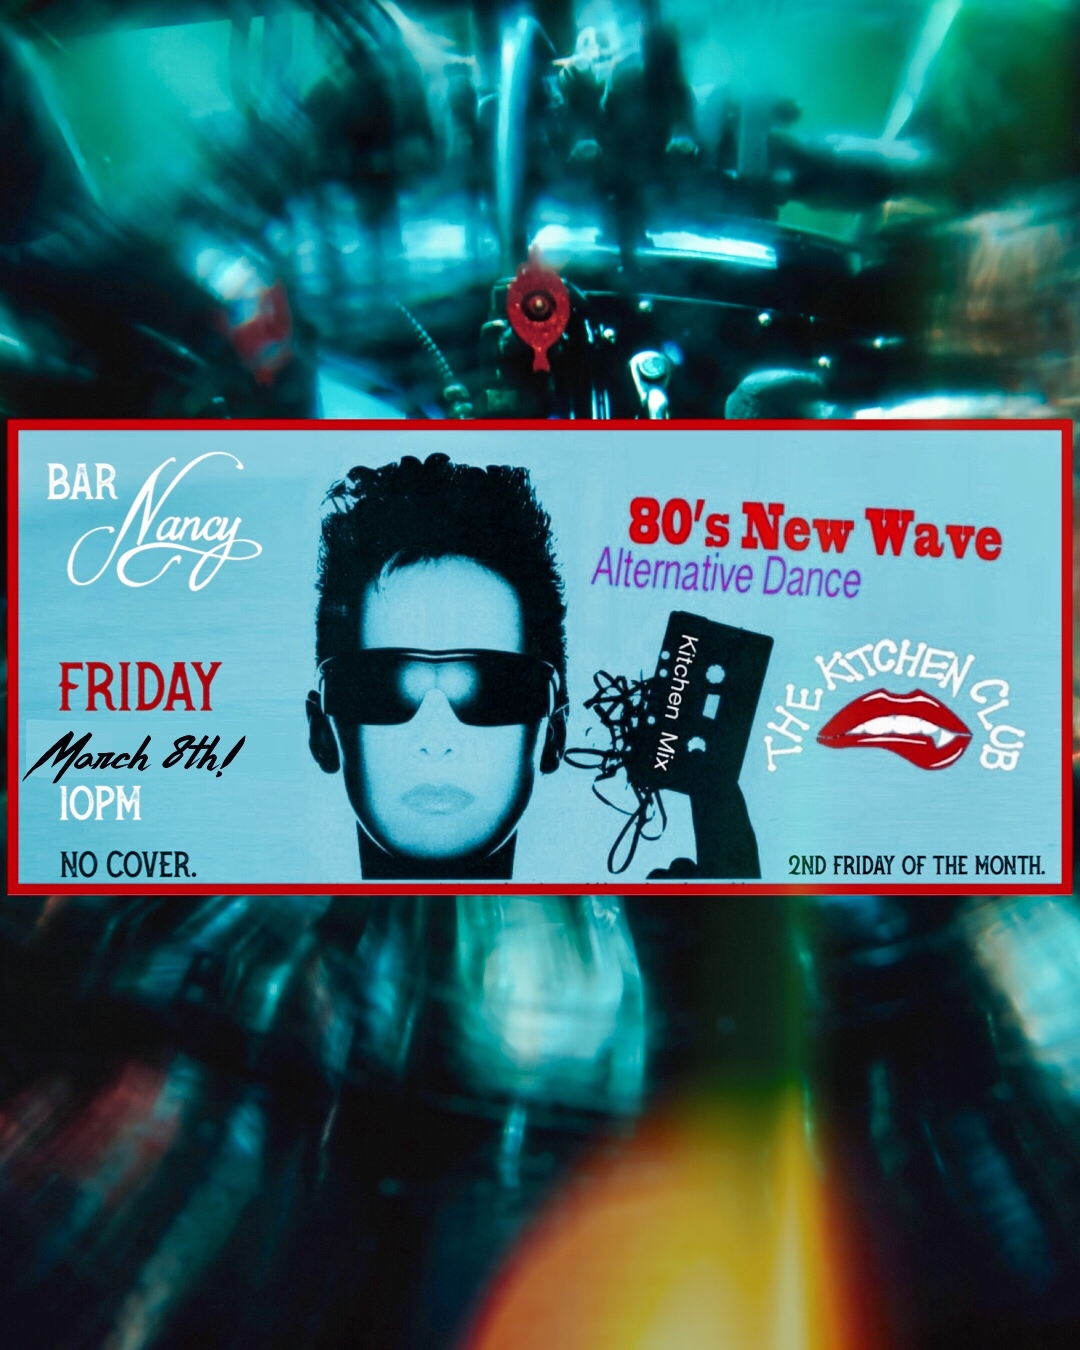 Kitchen Club - 80's New Wave Alternative Dance @ Bar Nancy - March 8th - 10PM - NO OVER